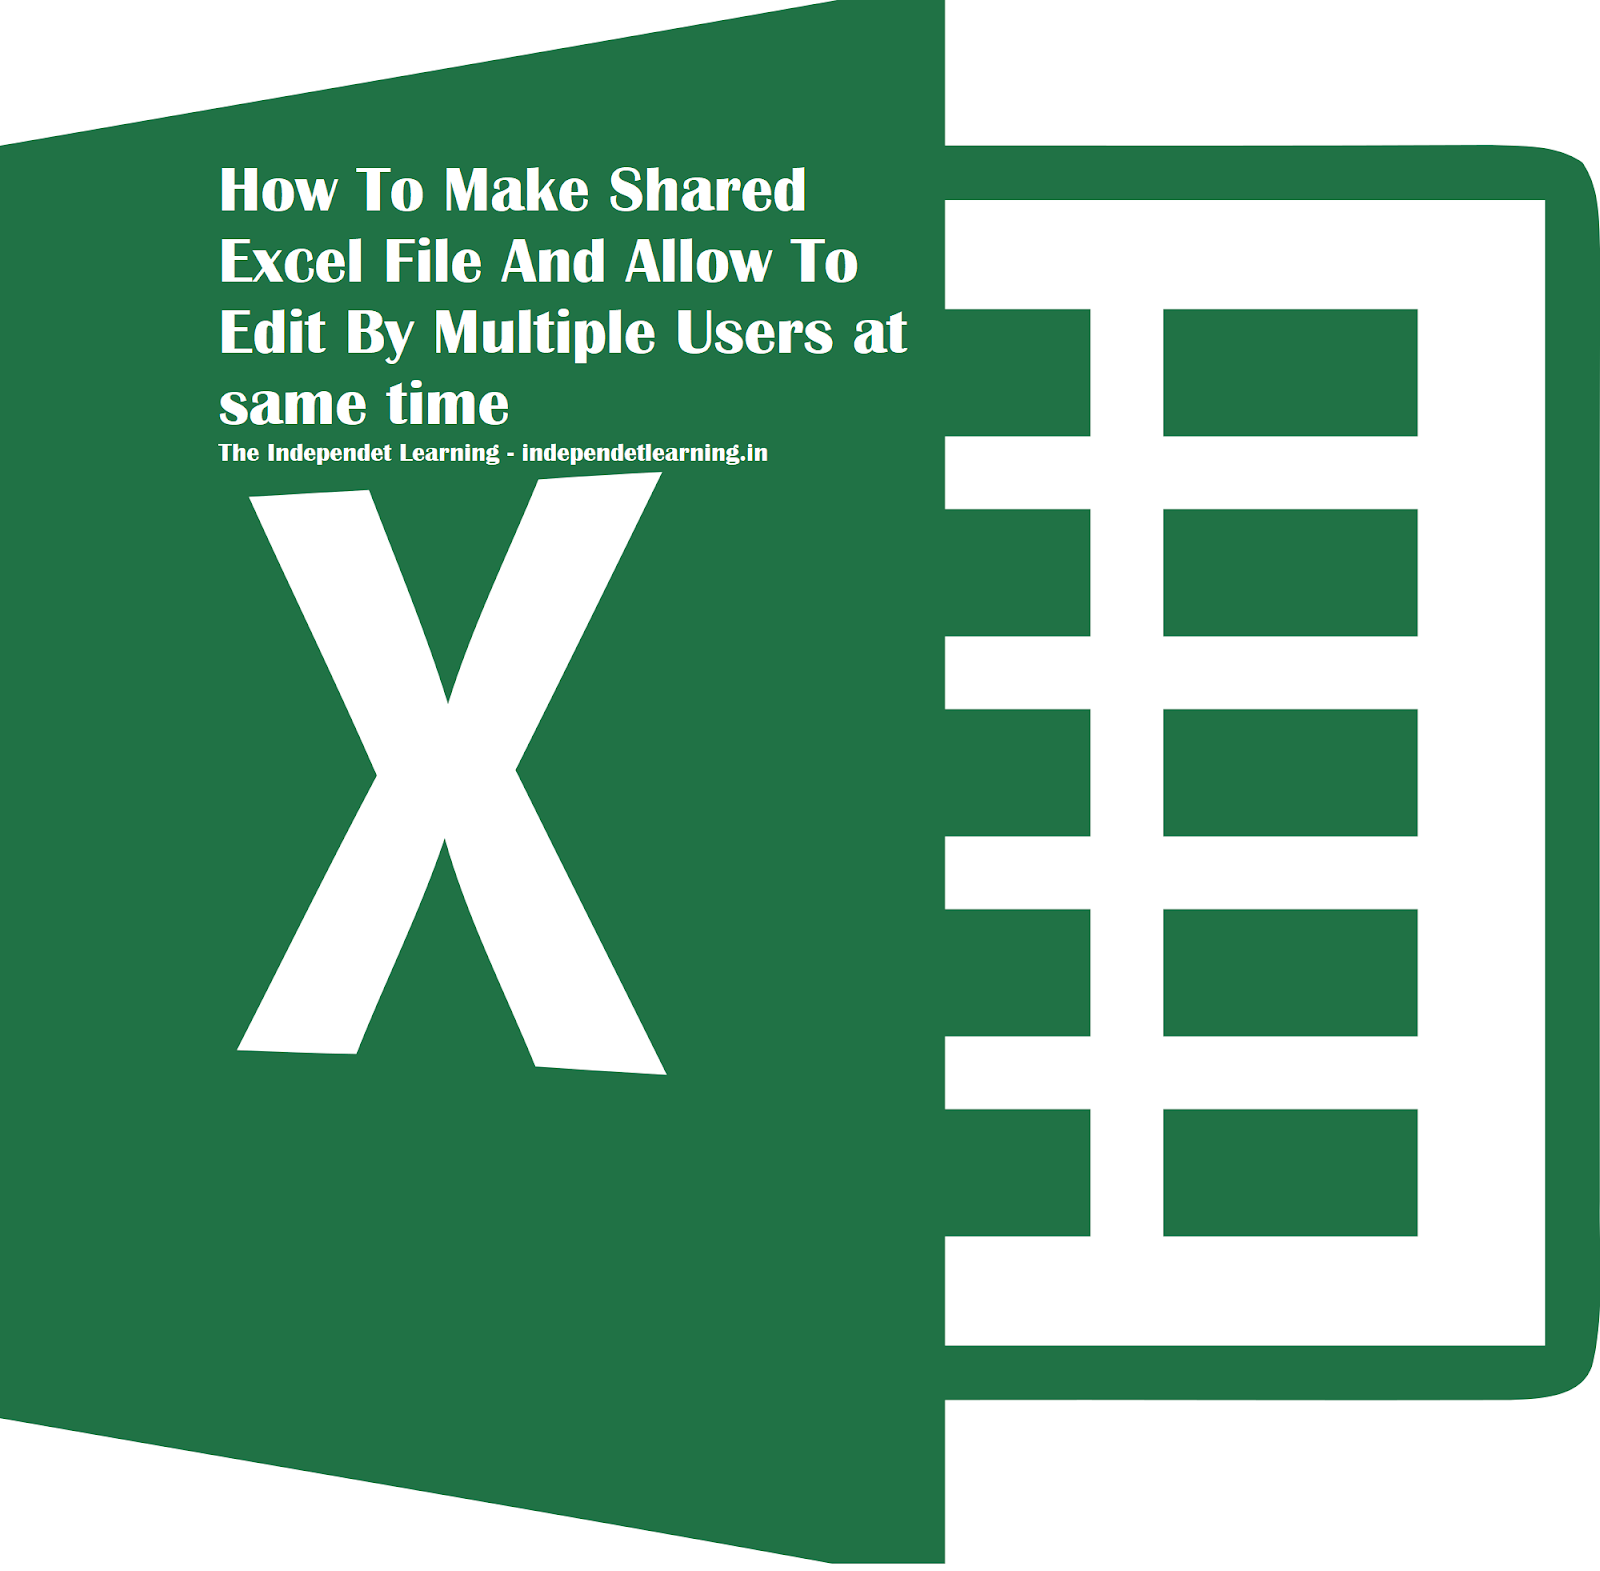 How To Make Shared Excel File or sheet And Allow To Edit By Multiple Users - No VBA, No  Software, without internet, how can two users work on single excel file or sheet at a time, How to Make Excel file or sheet Allow Multiple Users, Excel file or sheet sharing, how to track edits or and updates in ms excel file or sheet or worksheet, excel tips, top excel tips, excle file or sheet or worksheet sharing, multiple user editing in excel, edit or updates tracking in excel file or sheet or worksheet without vba or macro or code, how to create  shared excel file 2013 or 2007 or 2010, without internet, how to setup a shared excel file, how to make a shareable excel file, how to make an excel document a shared file, allow excel file oe sheet or worksheet to be edited by multiple users offline, offline excel file edit by multiple person or user, without internet